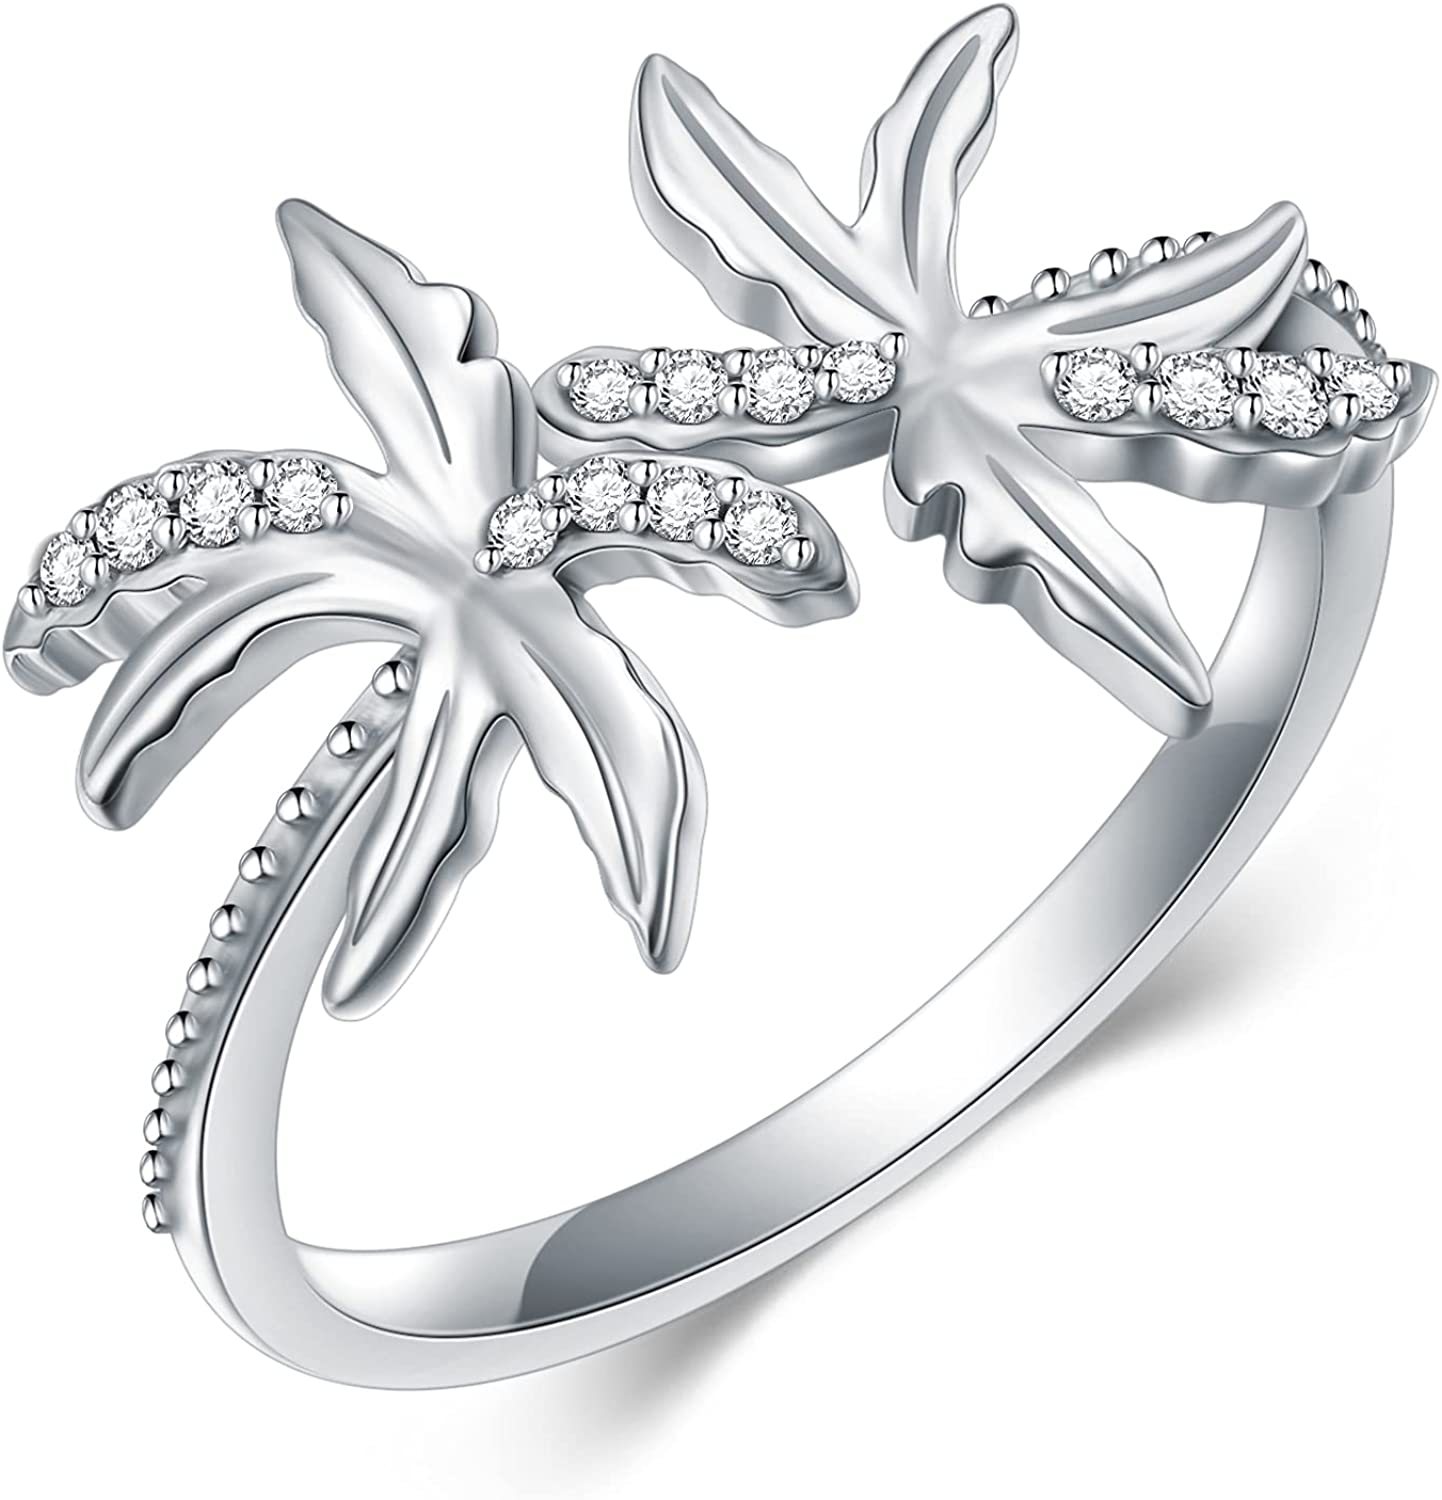 Now free shipping Coconut Tree Ring for Women Sterling Silver Adjustable S925 Open Classic